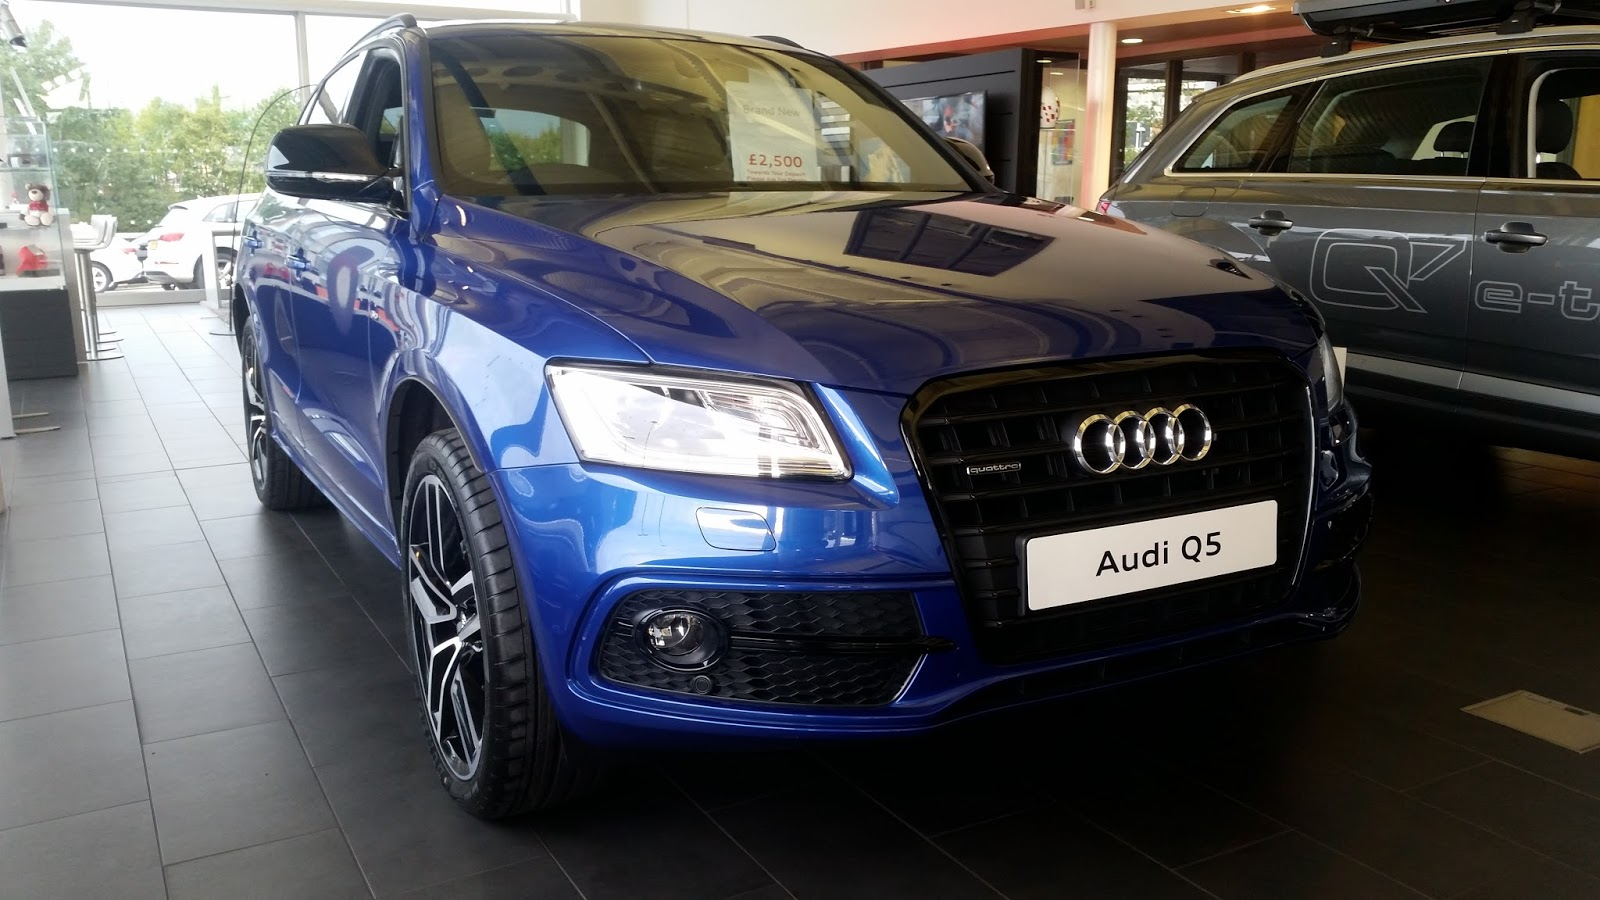 ... S-LINE PLUS. AUDI Q5 is first generation in model range of It. There  aren't any old generation AUDI Q5 in Its model ranges. AUDI Q5 has produced  since ...